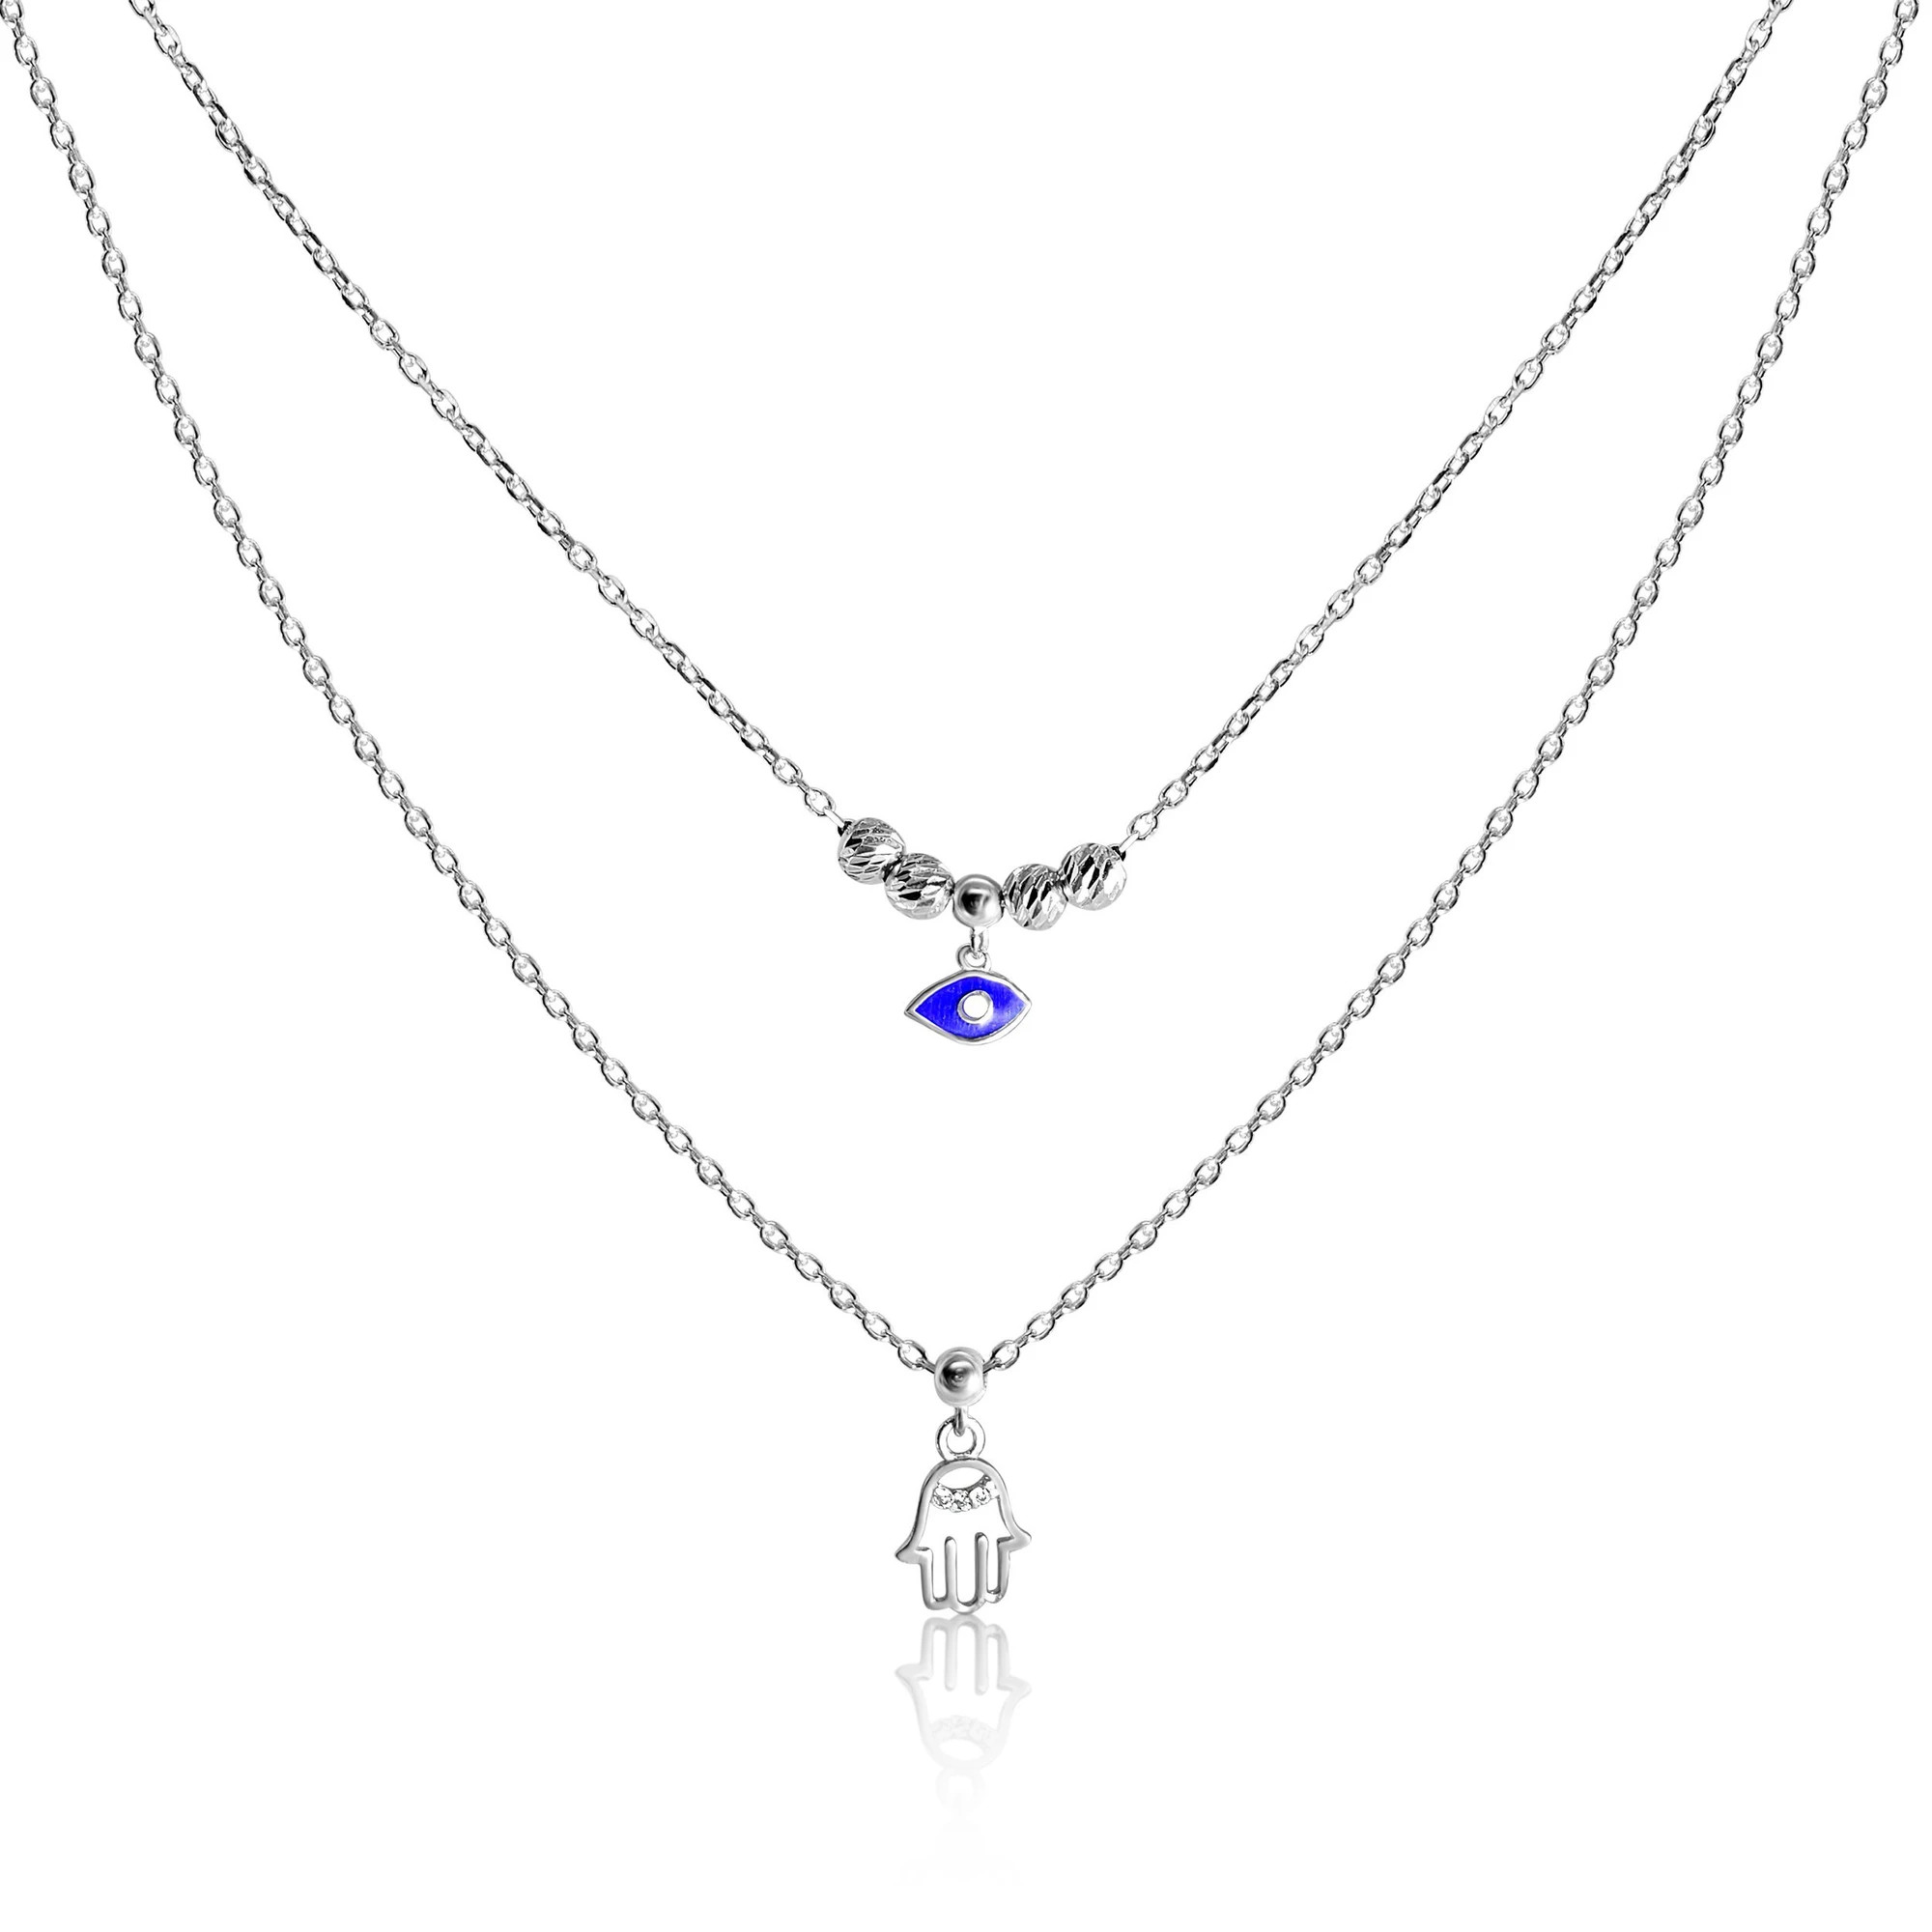 silver eye and hamsa necklace combo